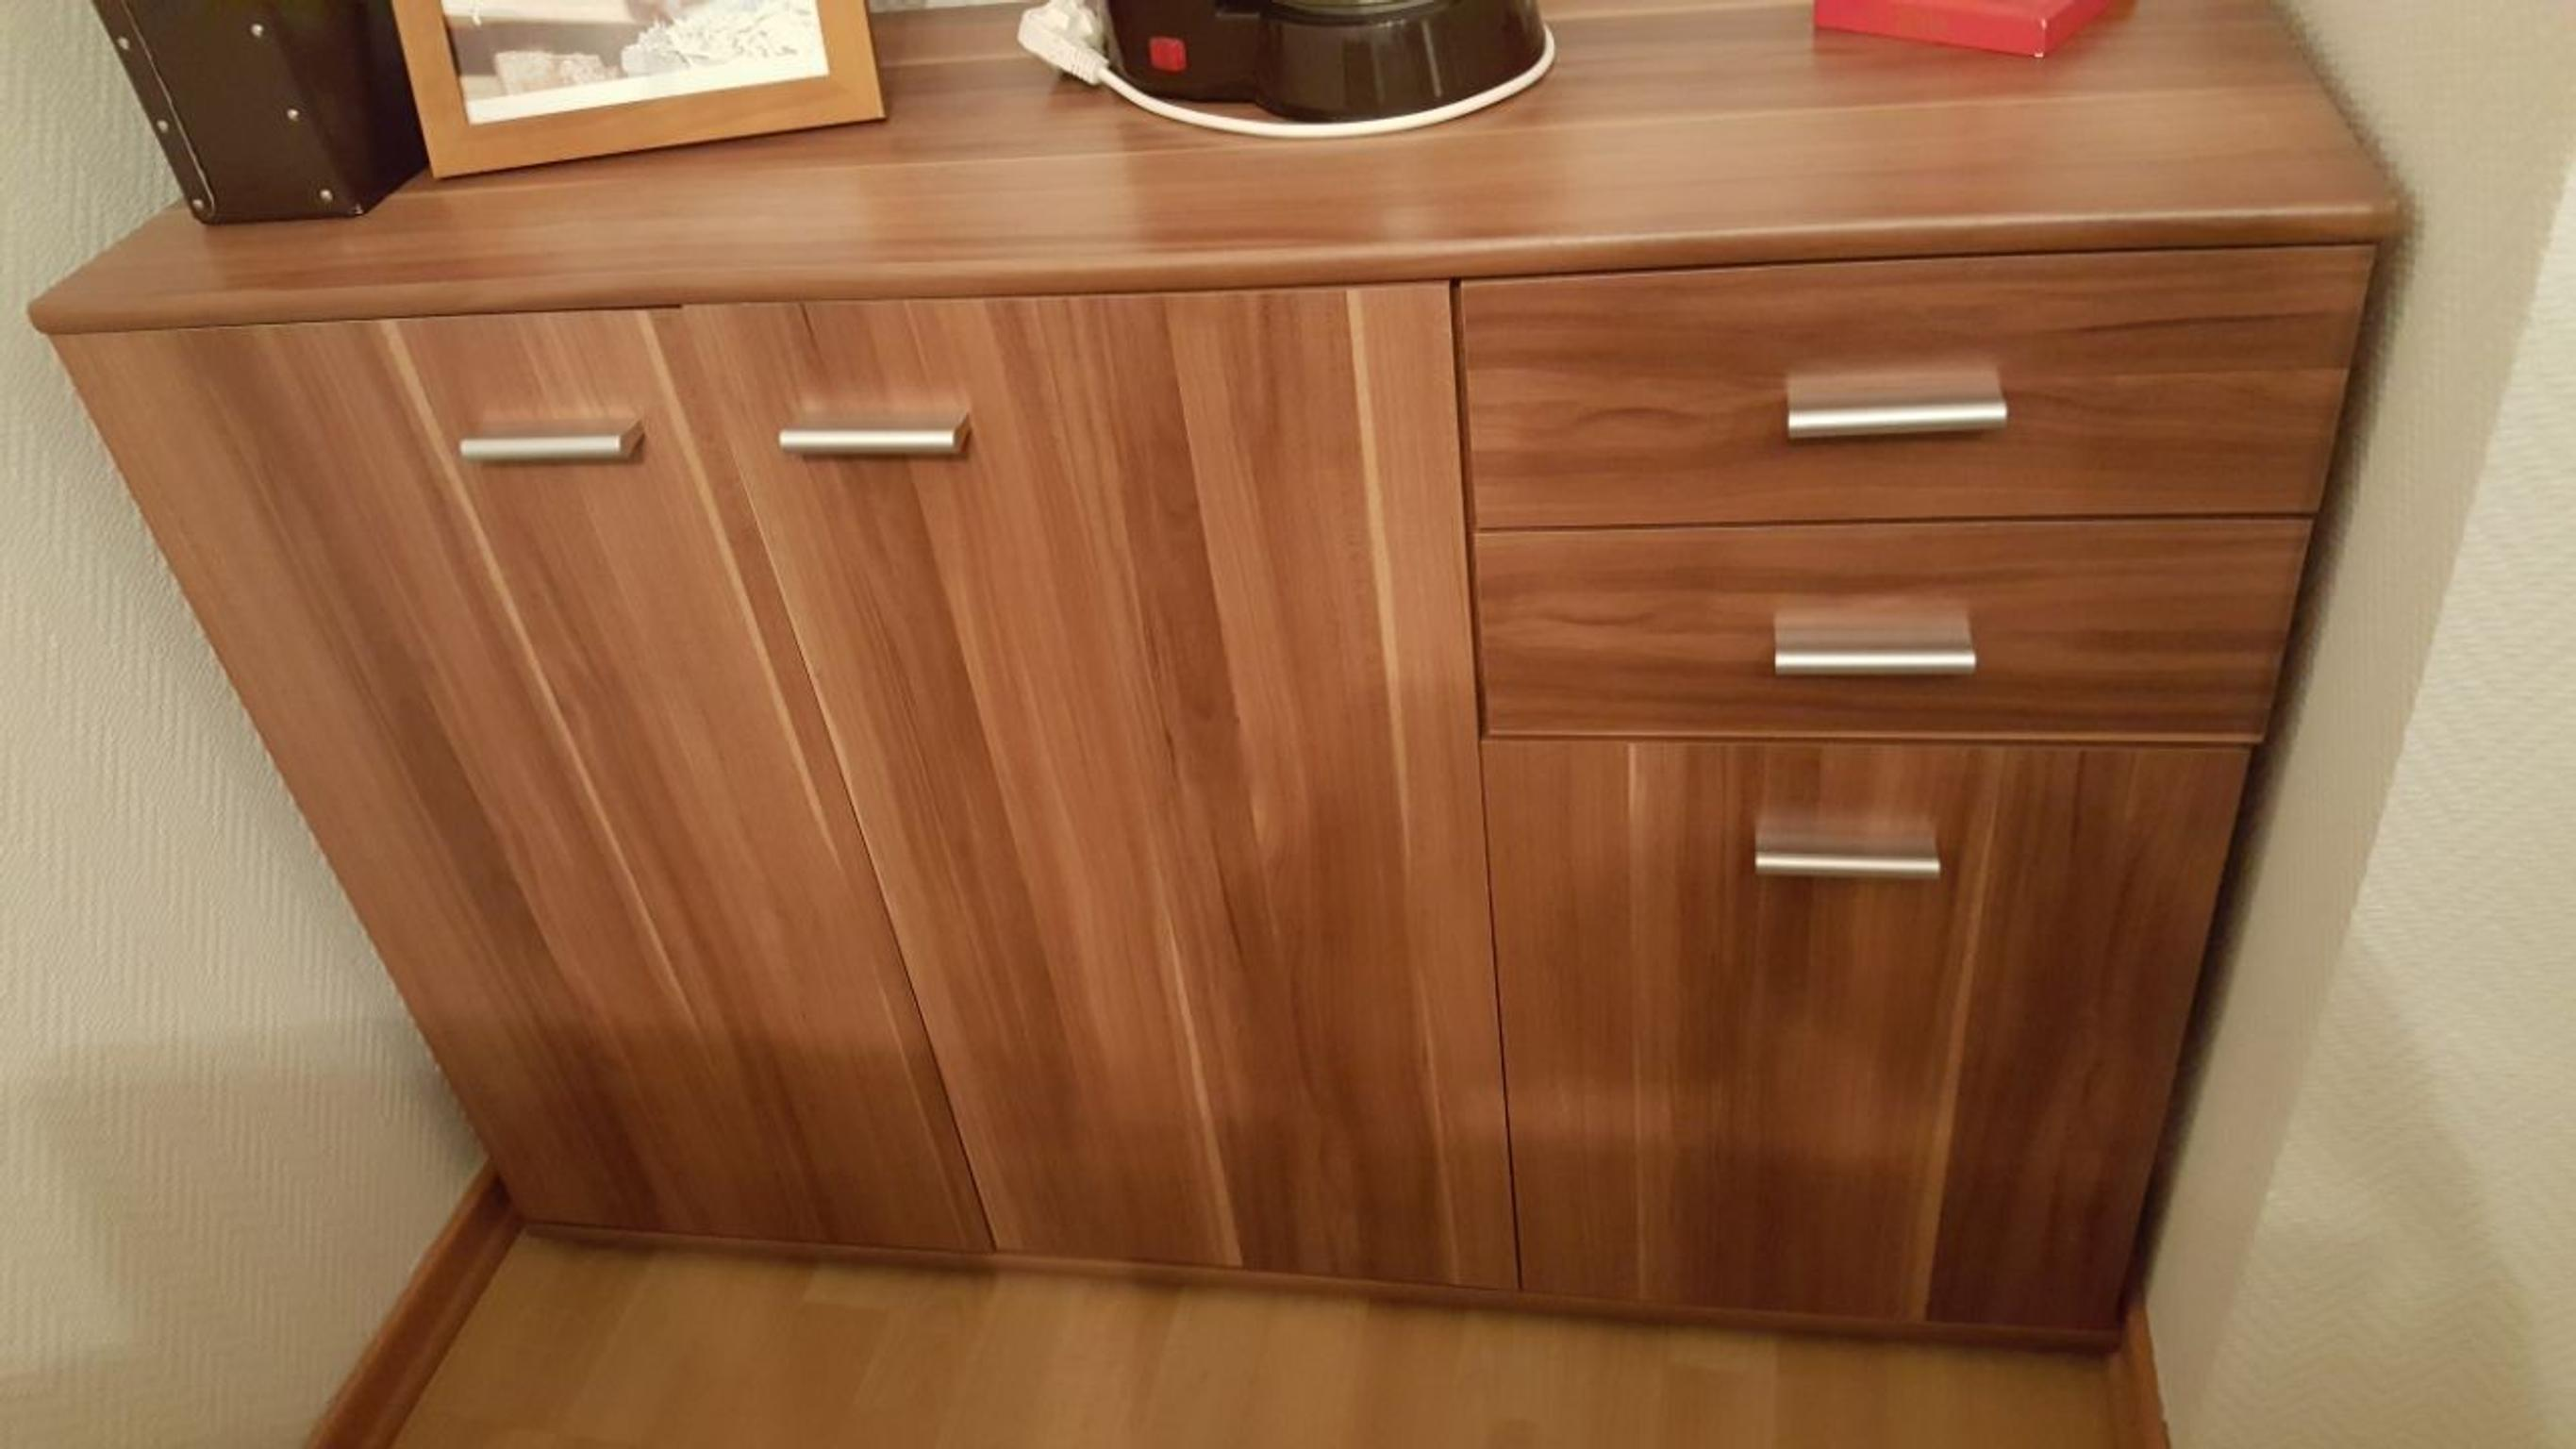 Einfaches Sideboard Kommode Aus Roller In 53175 Bonn For 30 00 For Sale Shpock